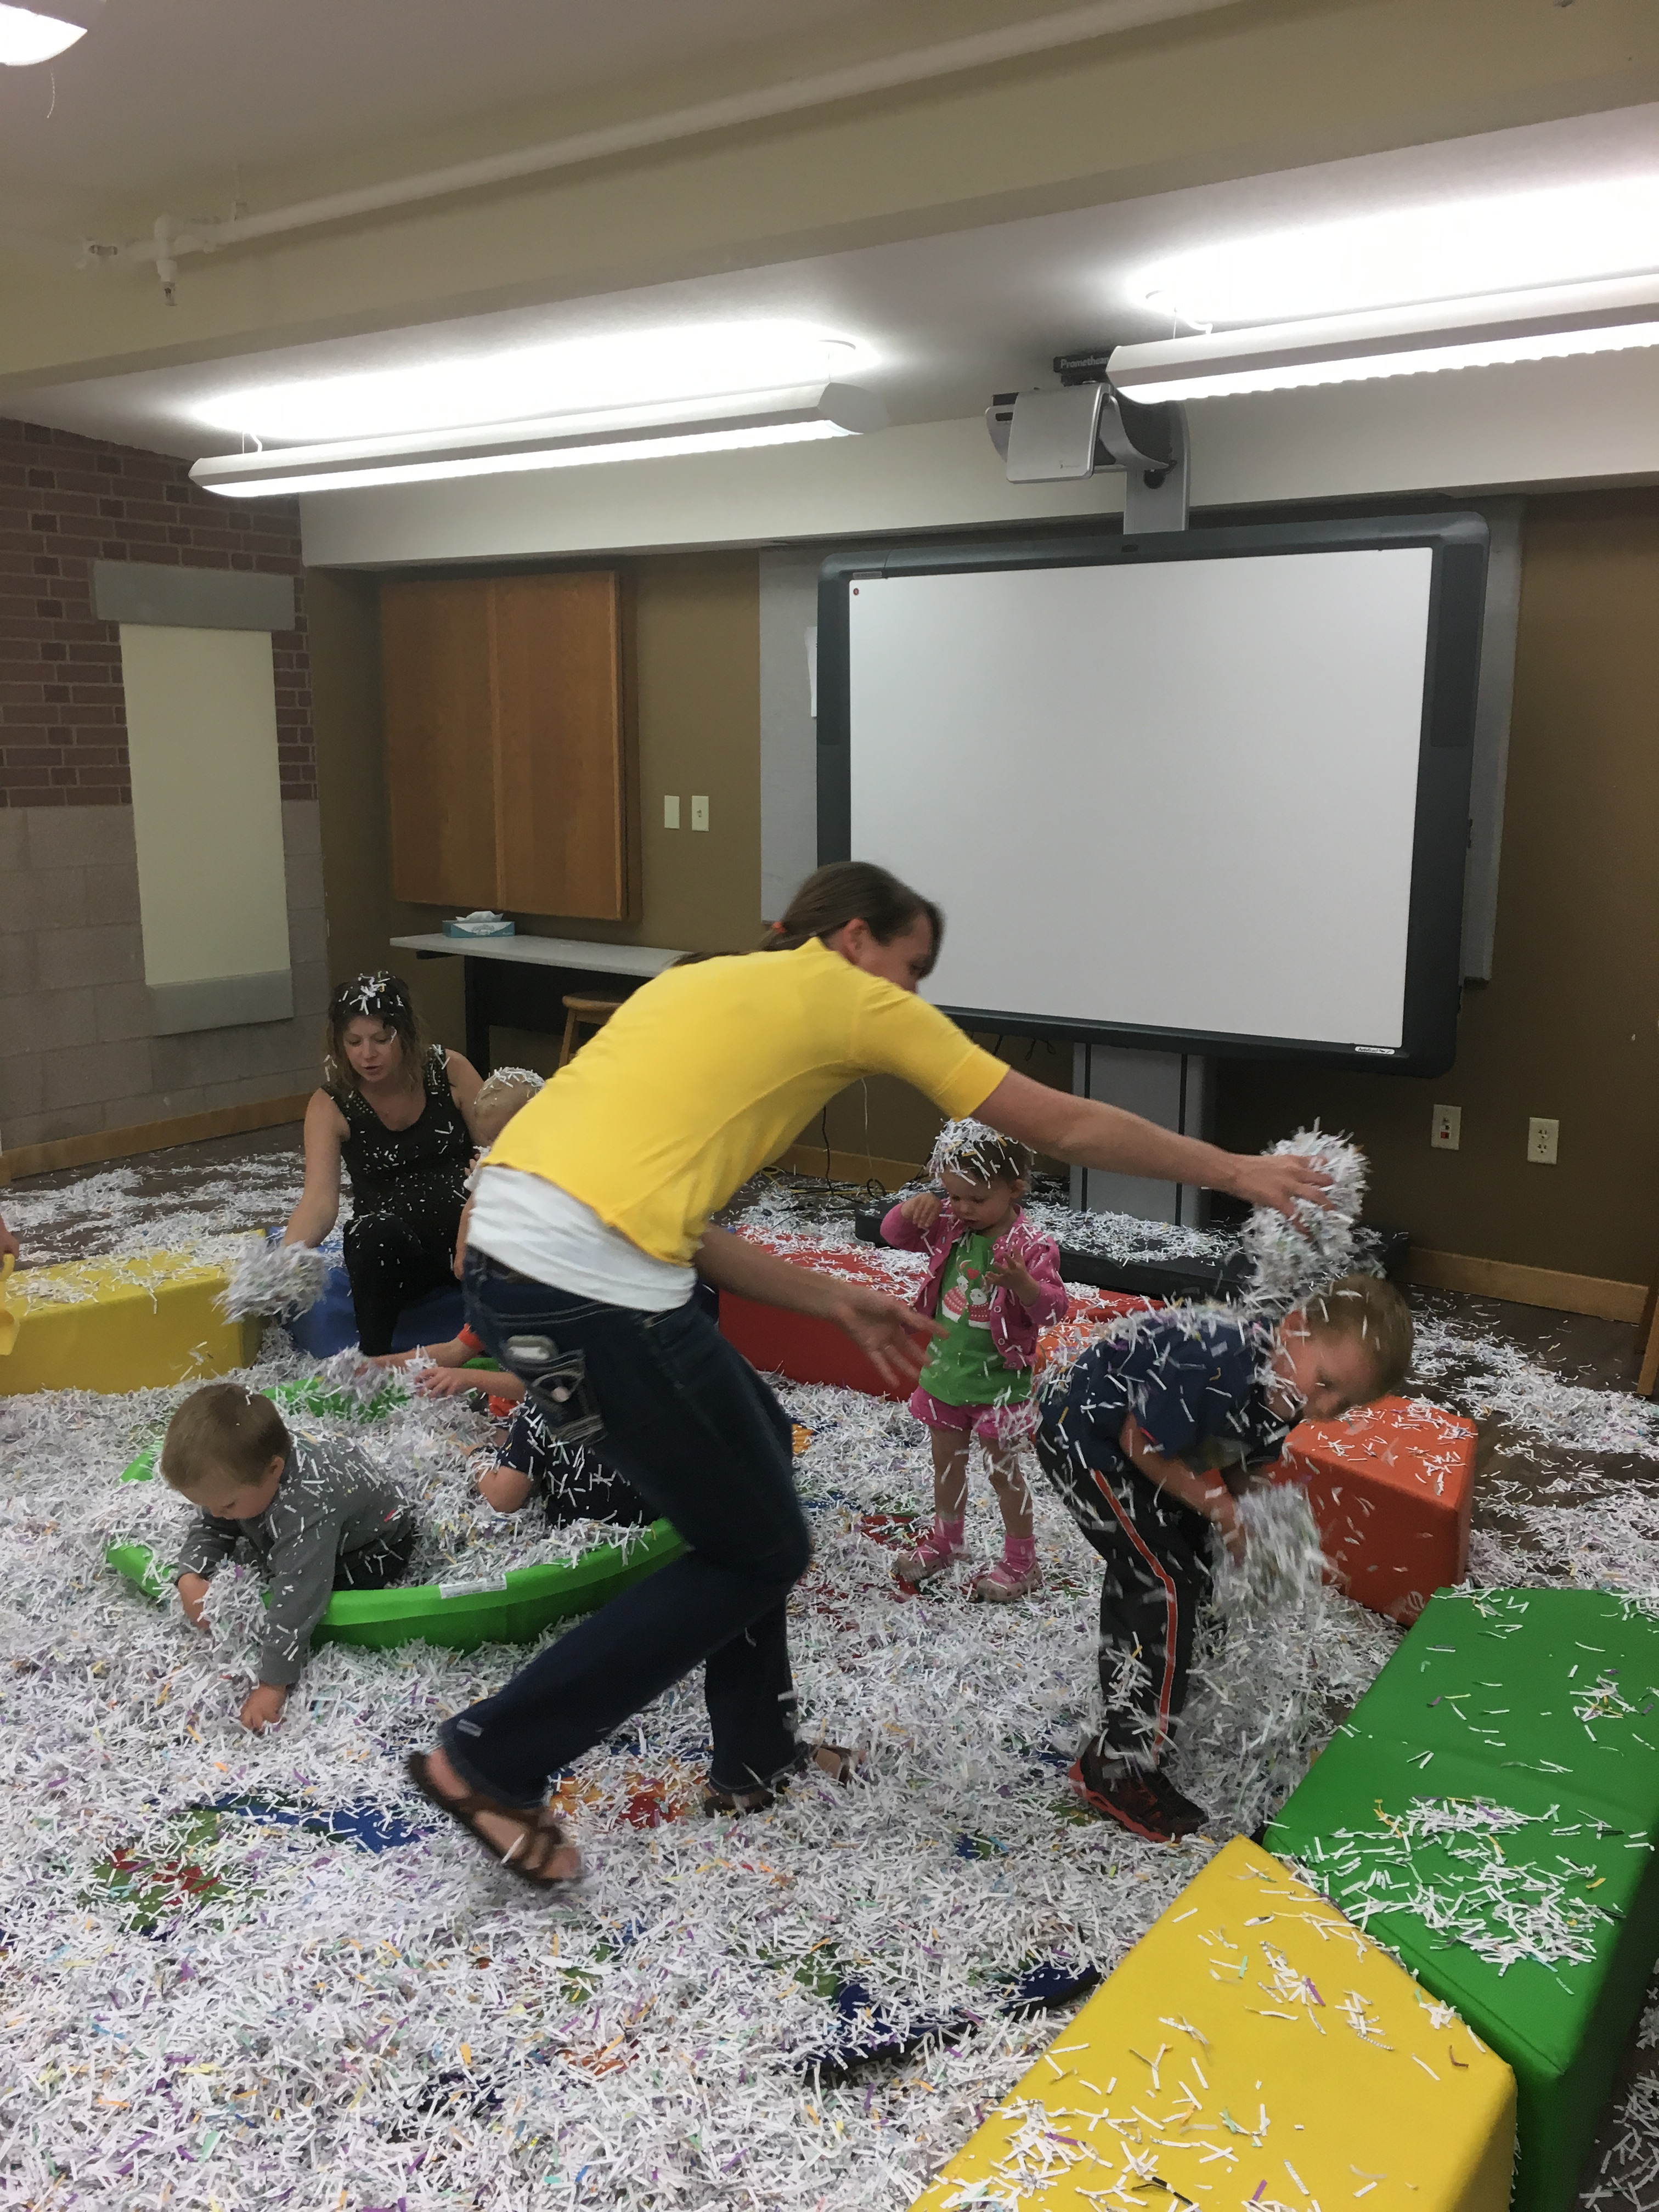 Shredded Paper Messy Fun Little Ones Event Yogibrarian